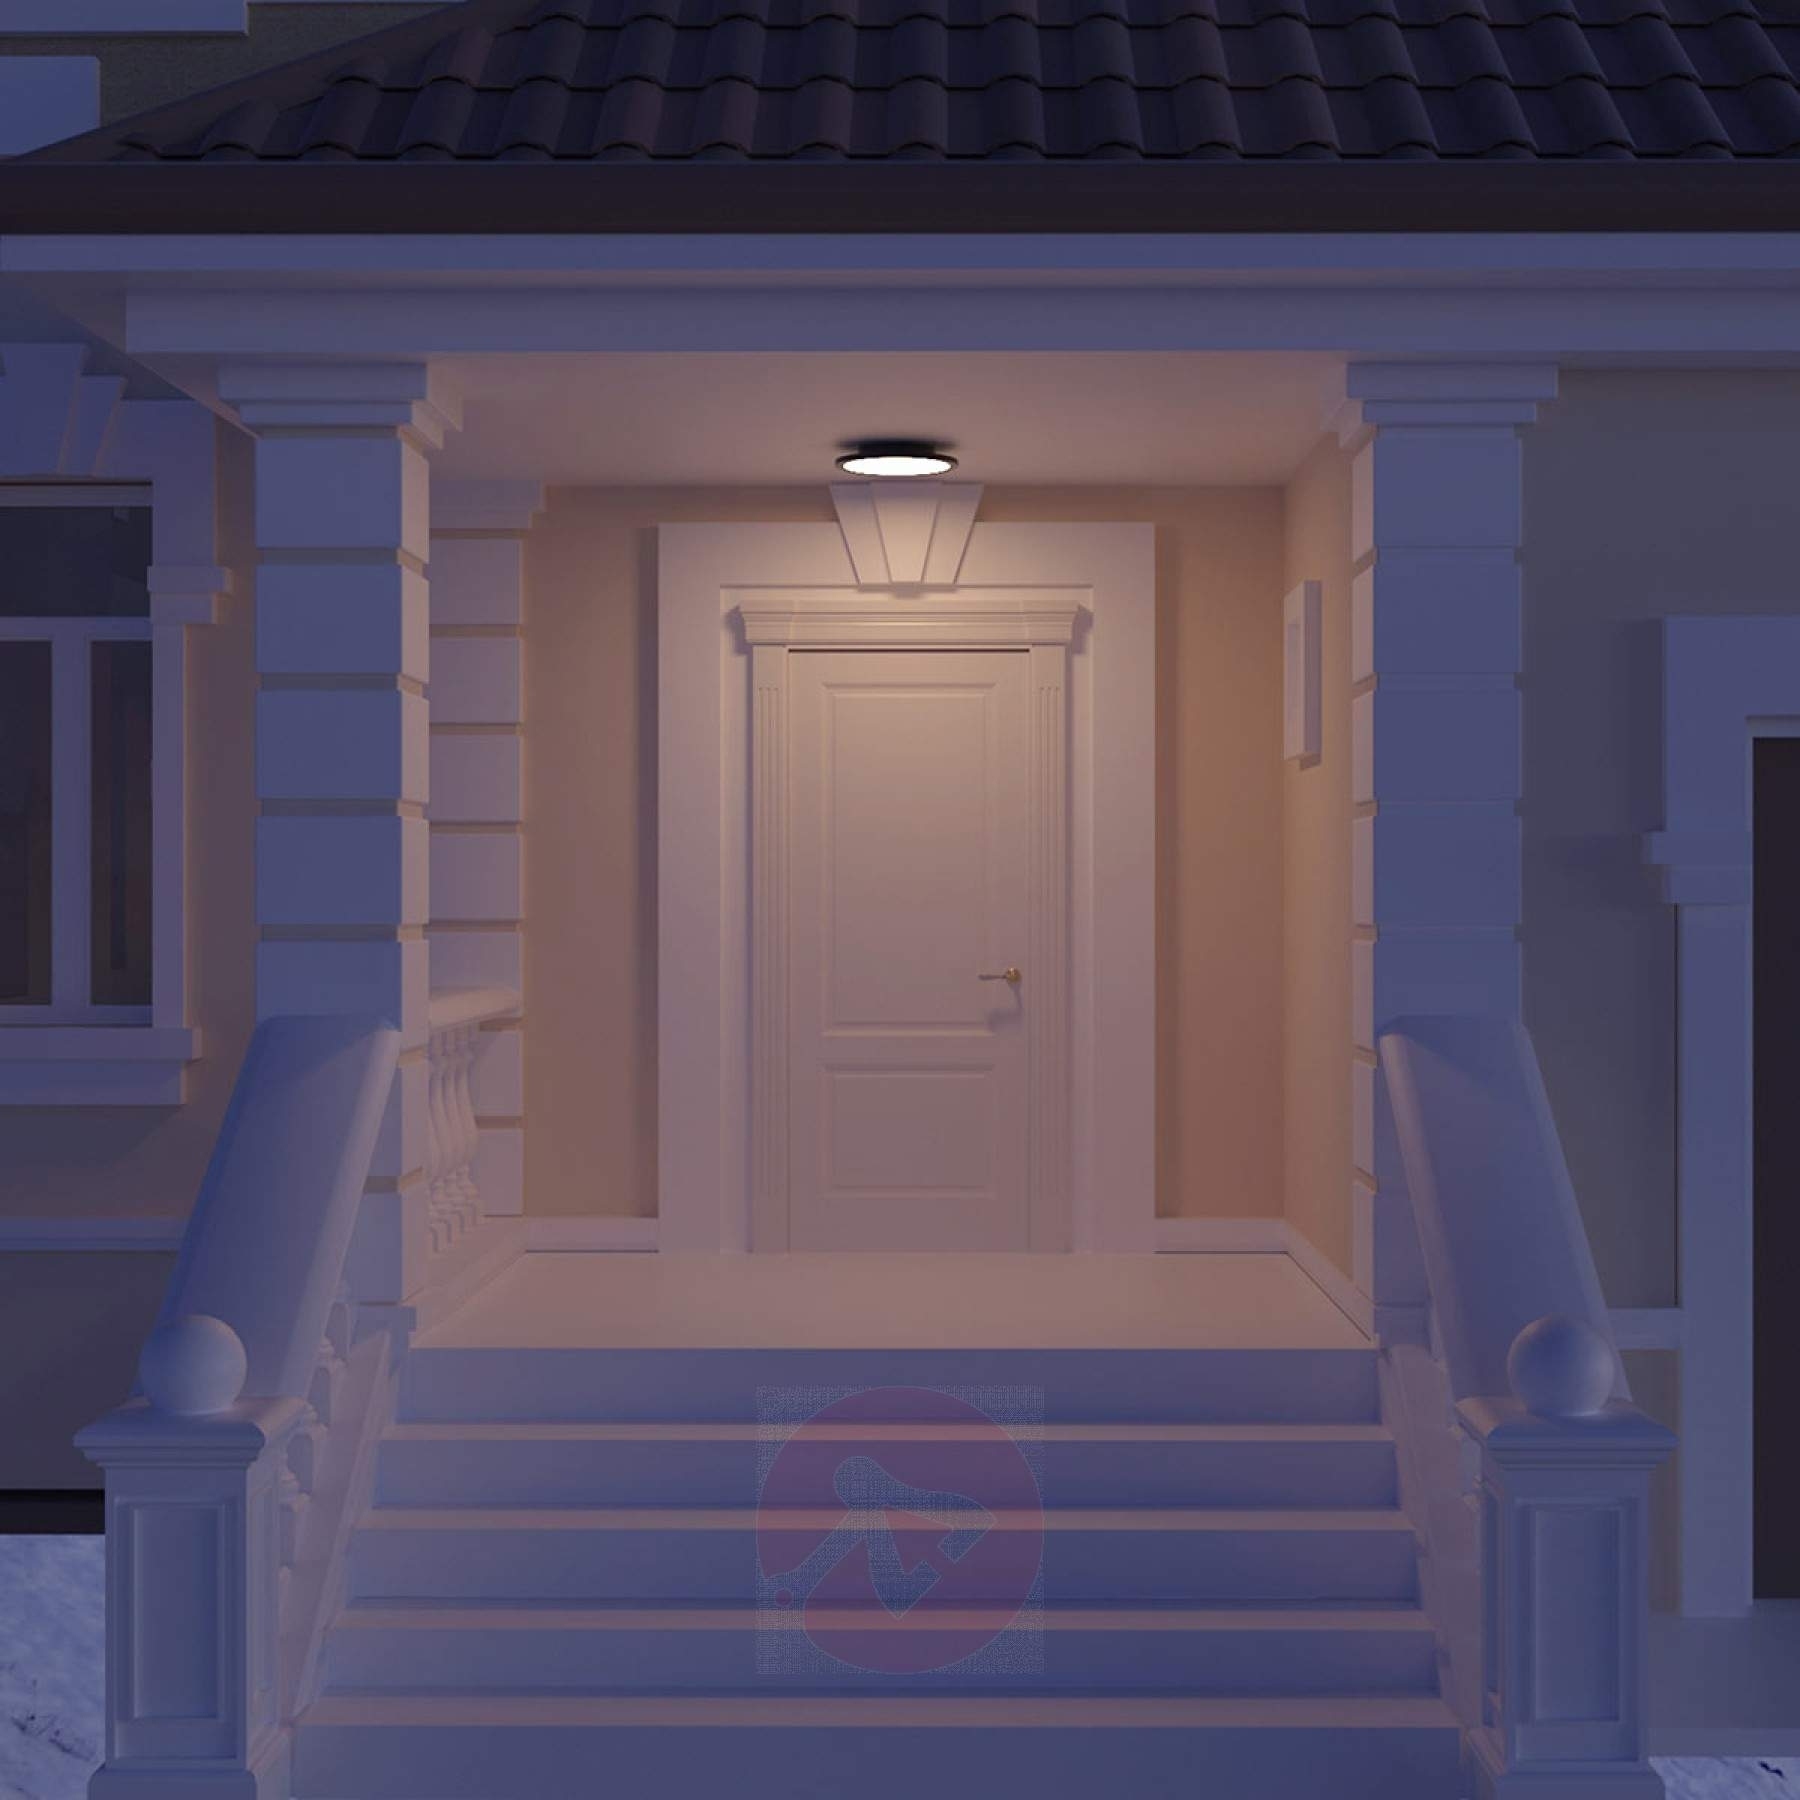 Led Outdoor Ceiling Light Malena With Sensor | Lights.co (#6 of 15)